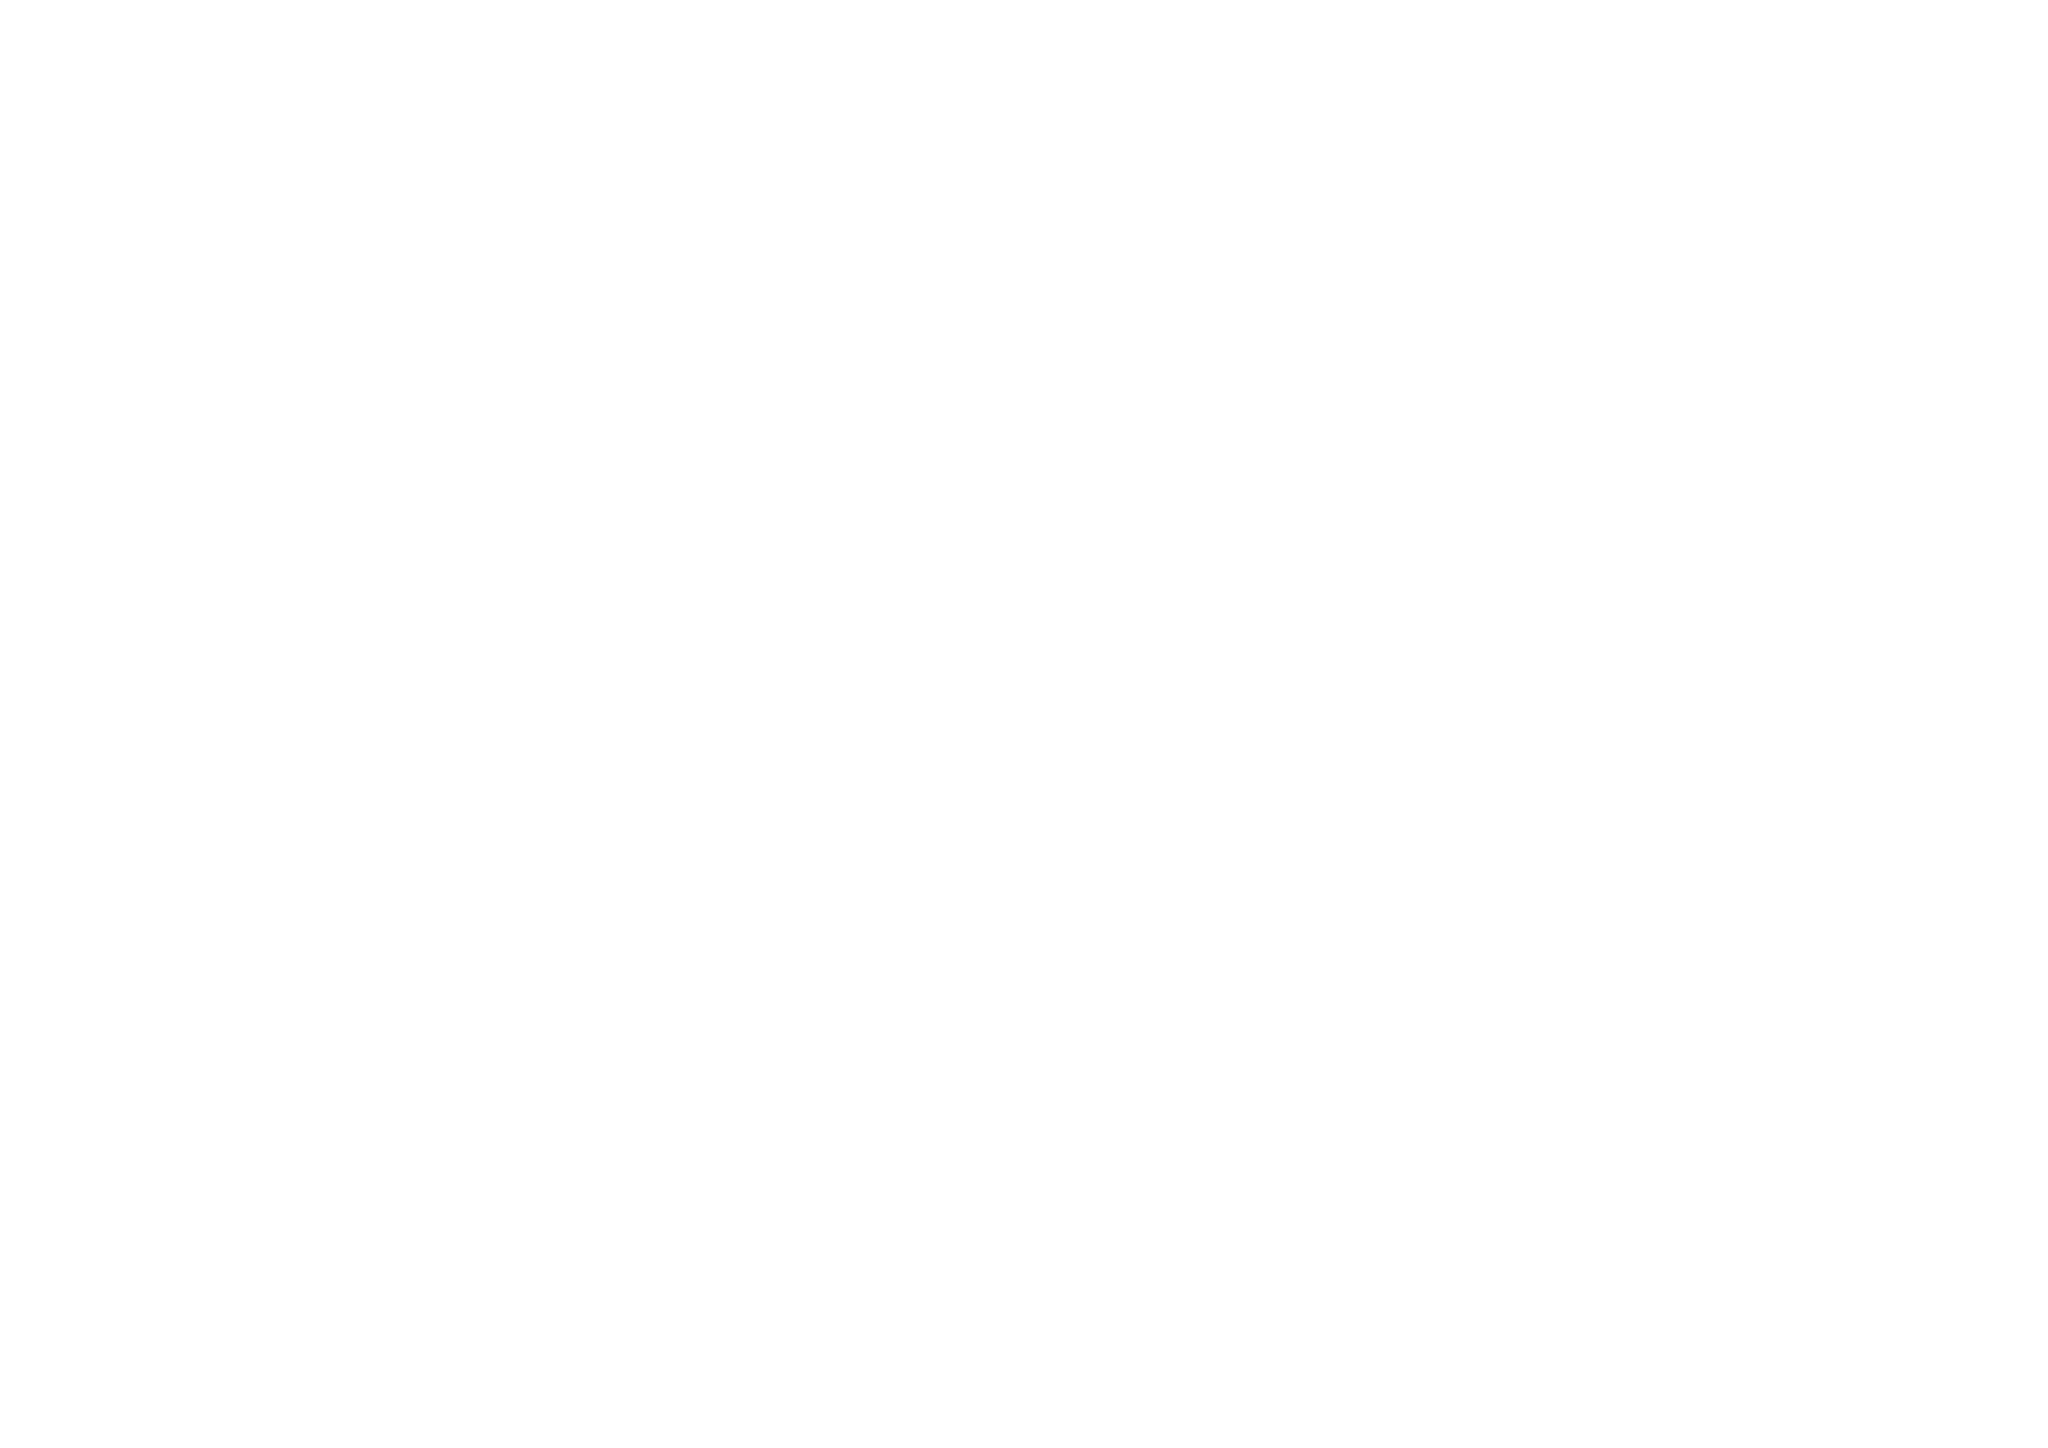 My African Hairitage Style (MAHS)